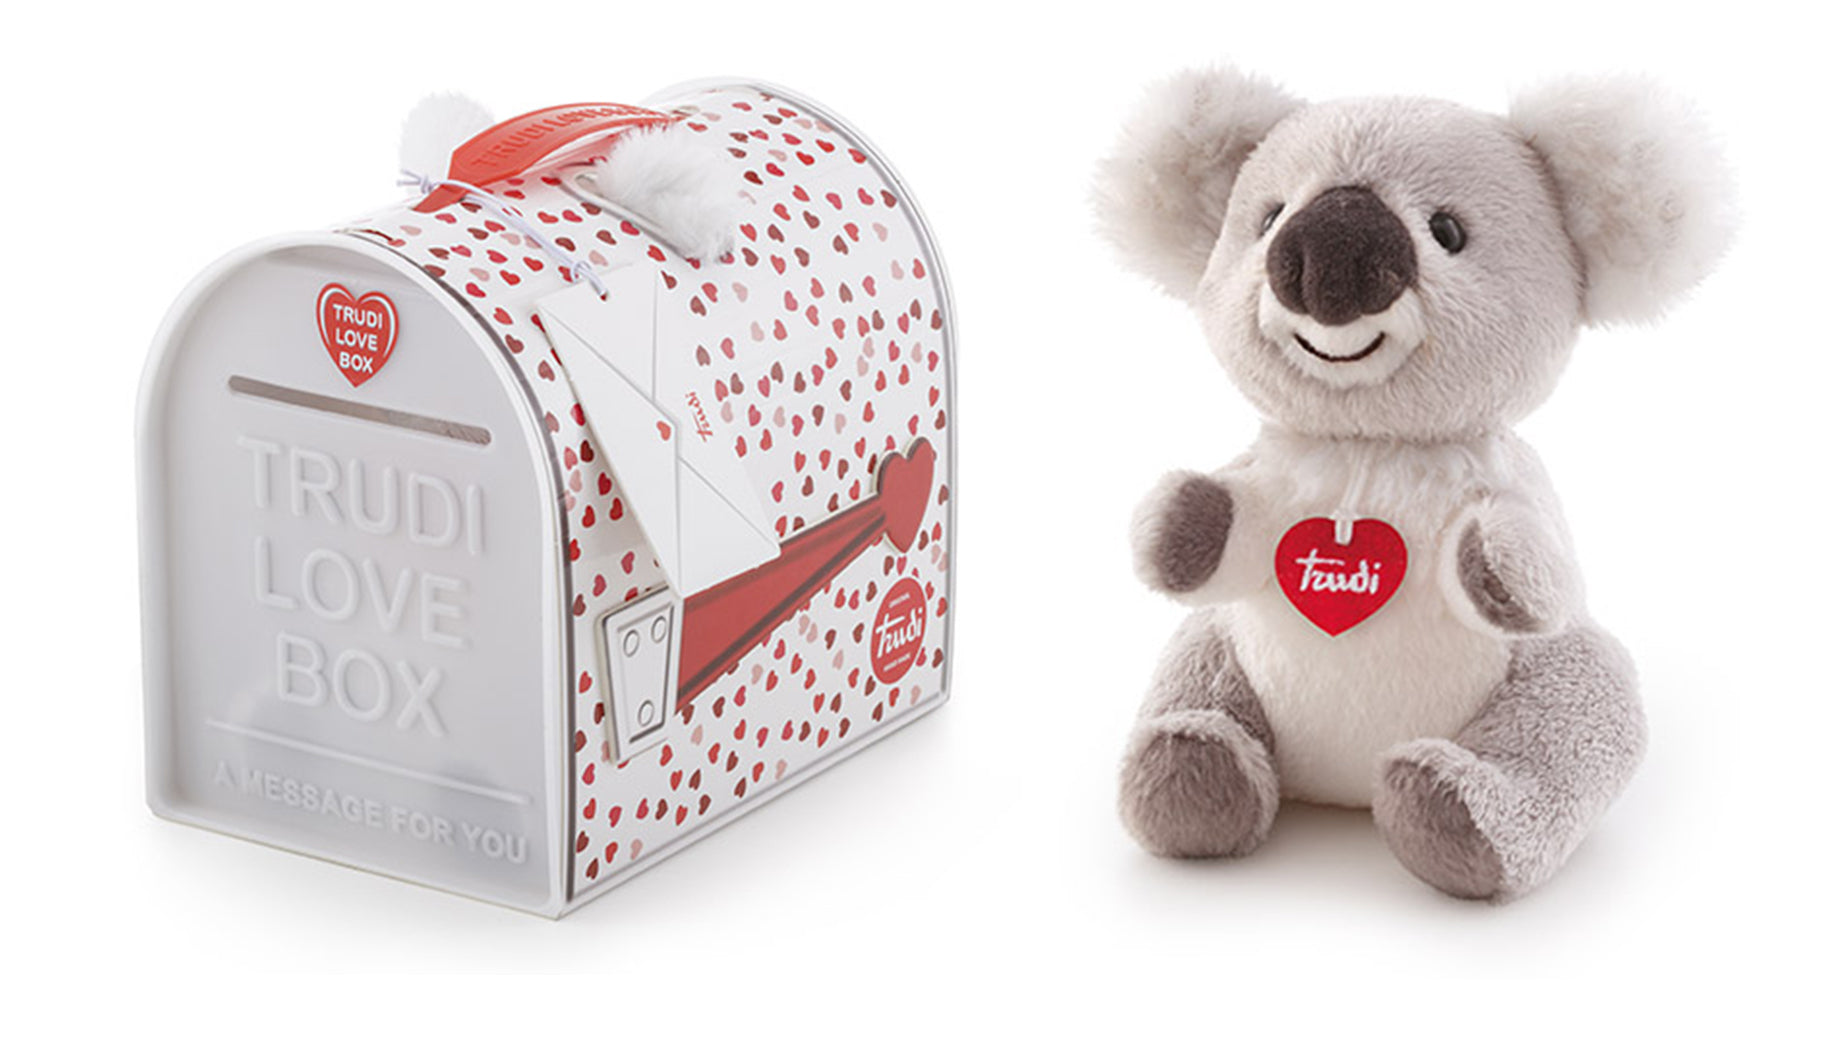 Love Box - Trudino Koala Plush - 15cm